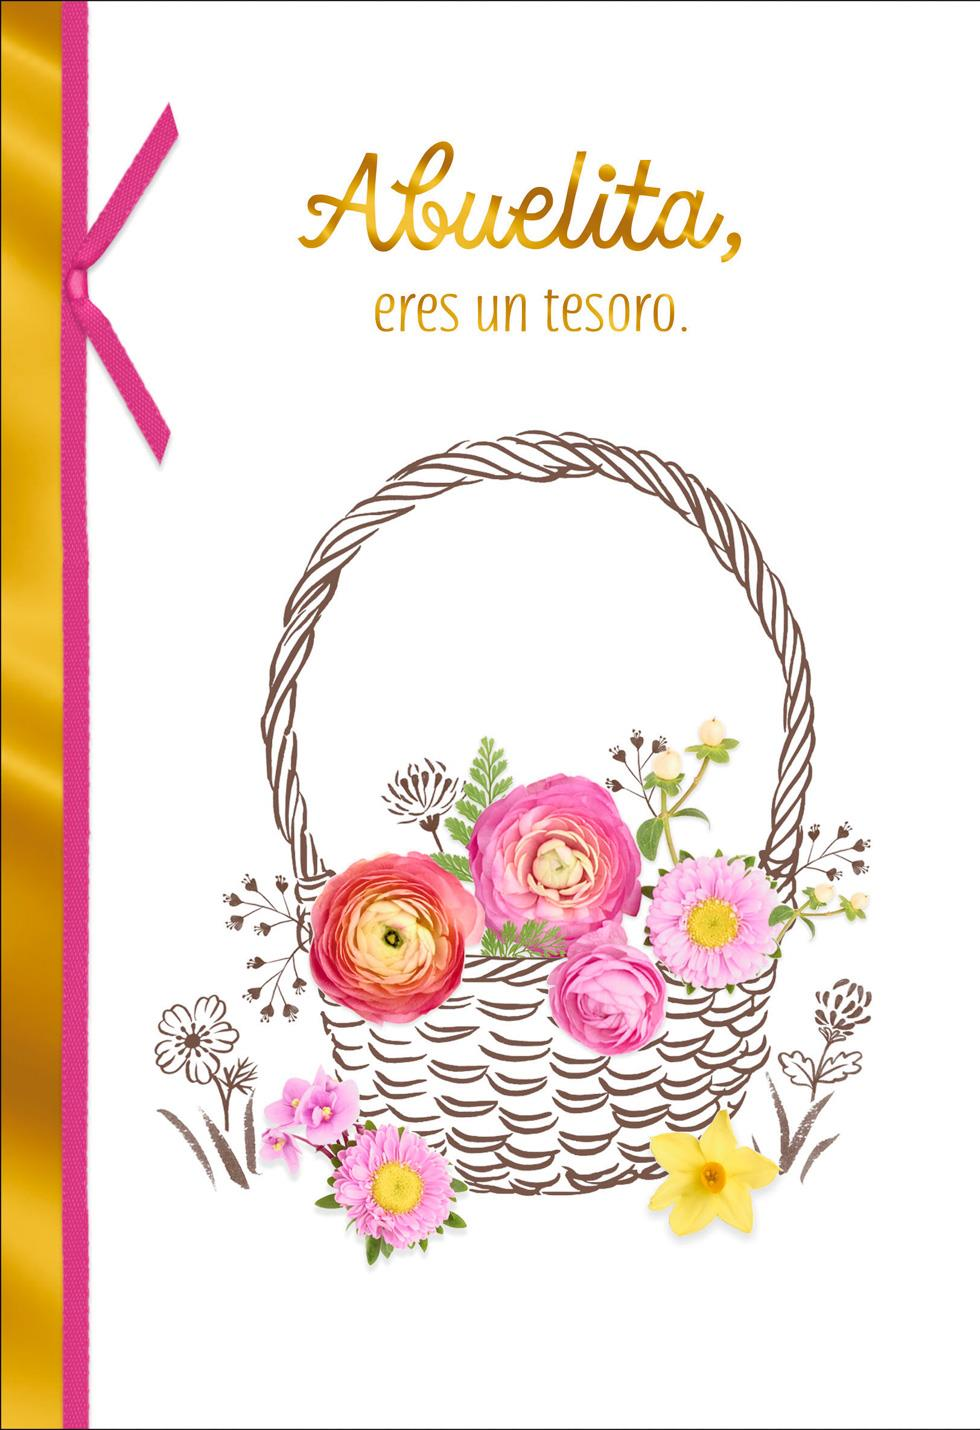 Flower Basket Spanish Language Birthday Card For Grandma